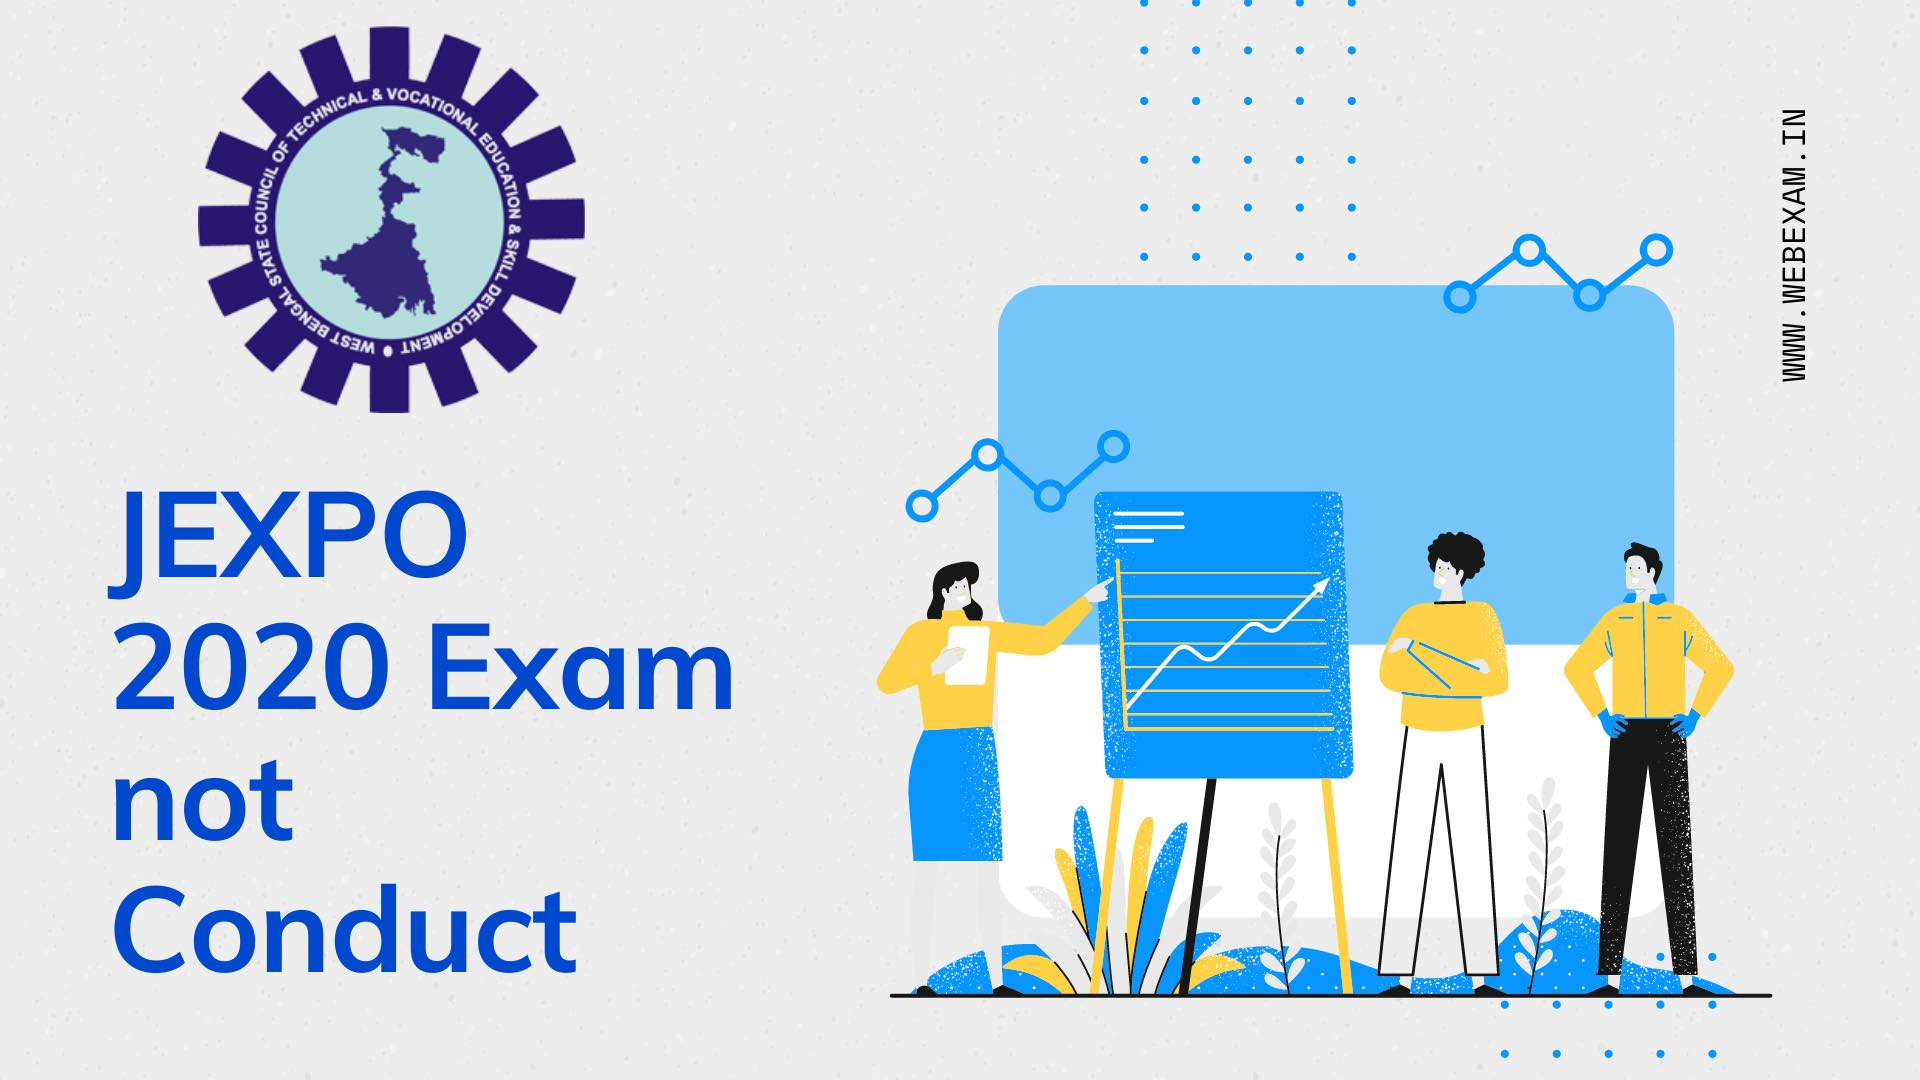 JEXPO 2020 Exam not conduct